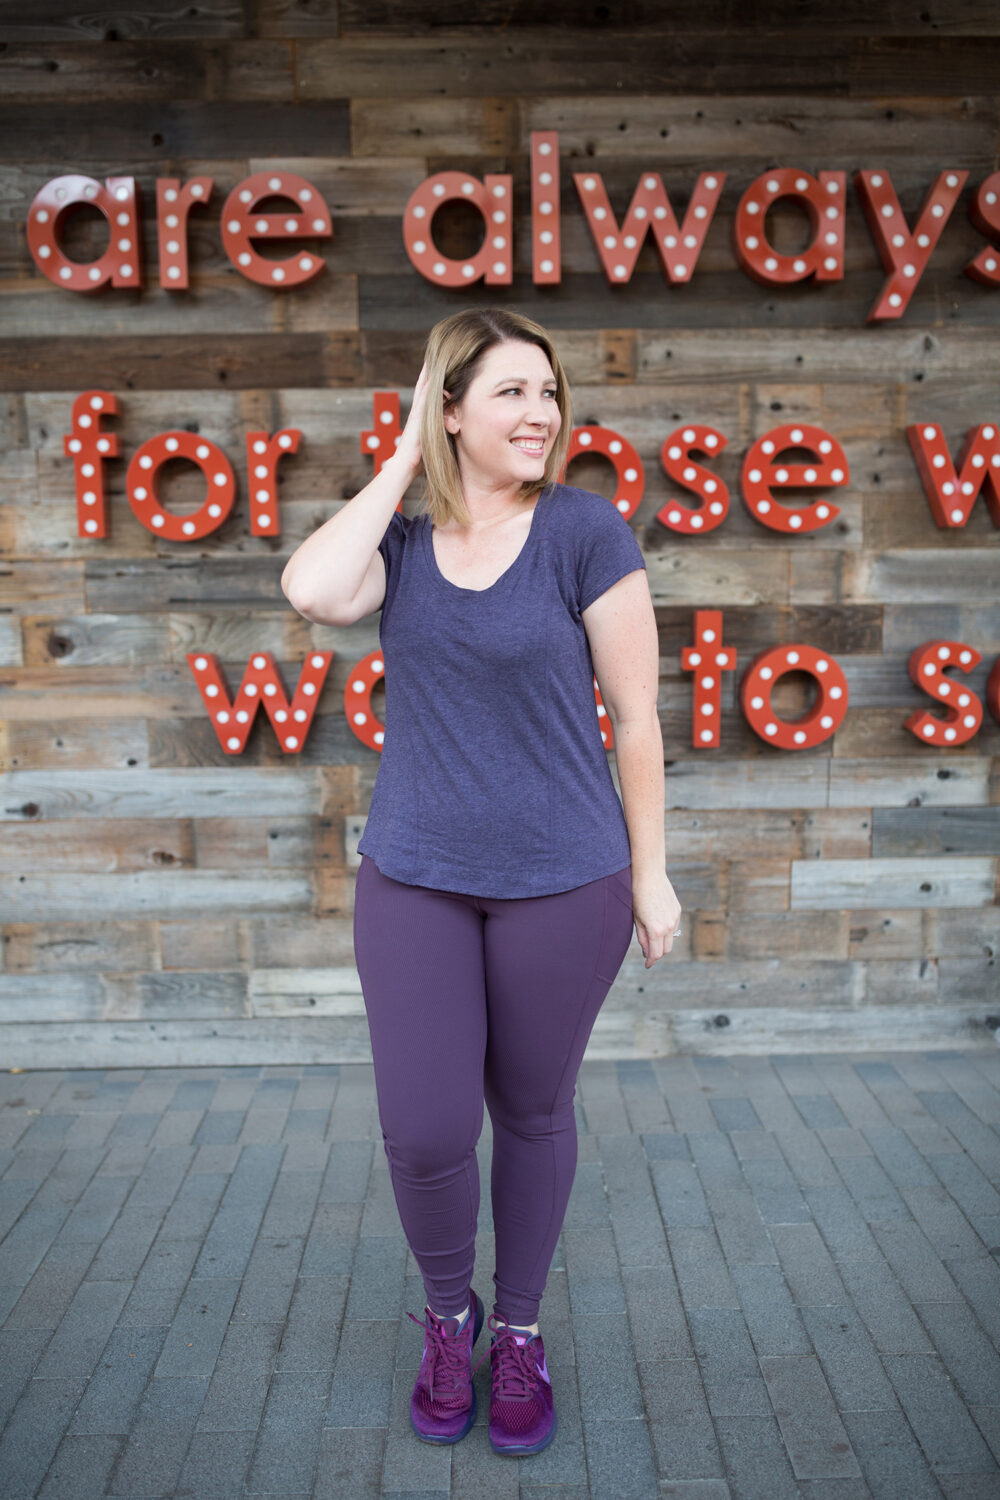 Are you part of the Zella leggings cult? They're some of the BEST workout pants for a pear shape body, and fit like a dream!